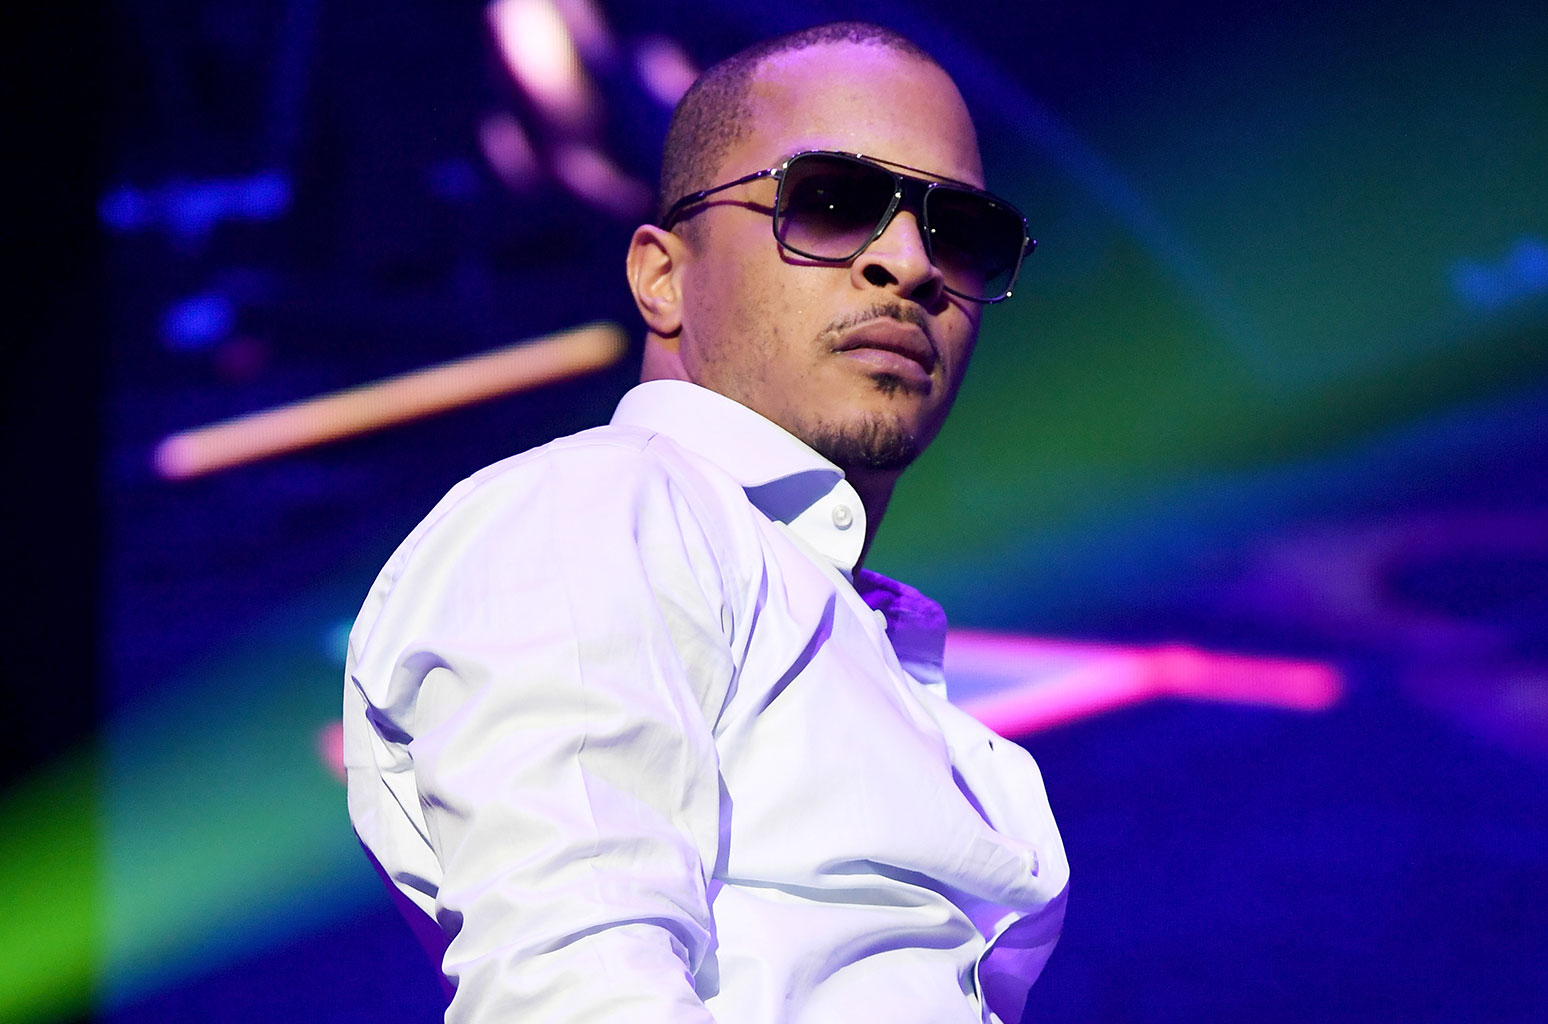 T.I. Argues With Man In The Street For Wearing Gucci - He's Serious About Boycotting The Brand - Watch The Video